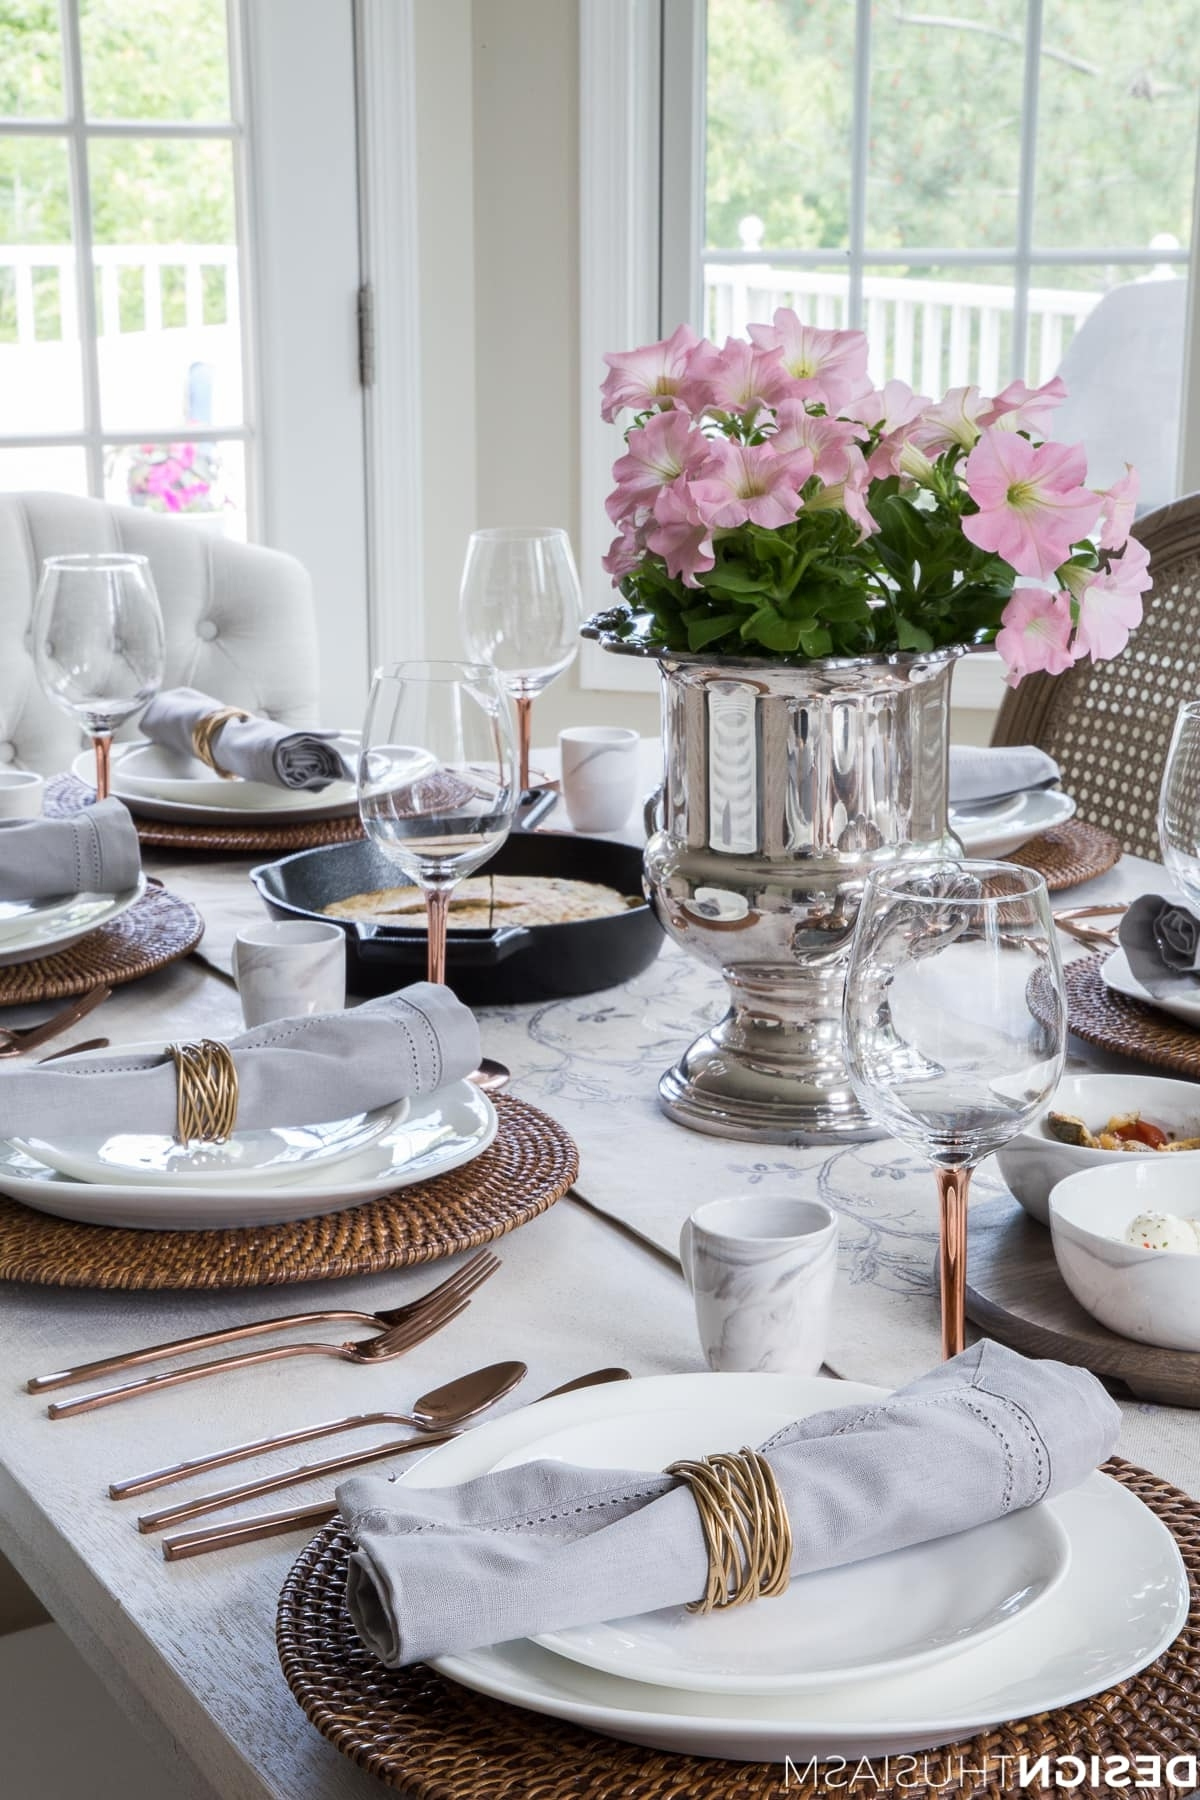 2017 Artisanal Dining Tables With Regard To Staycation Ideas: Set An Artisanal Table For A Pampered Vacation At Home (View 22 of 25)